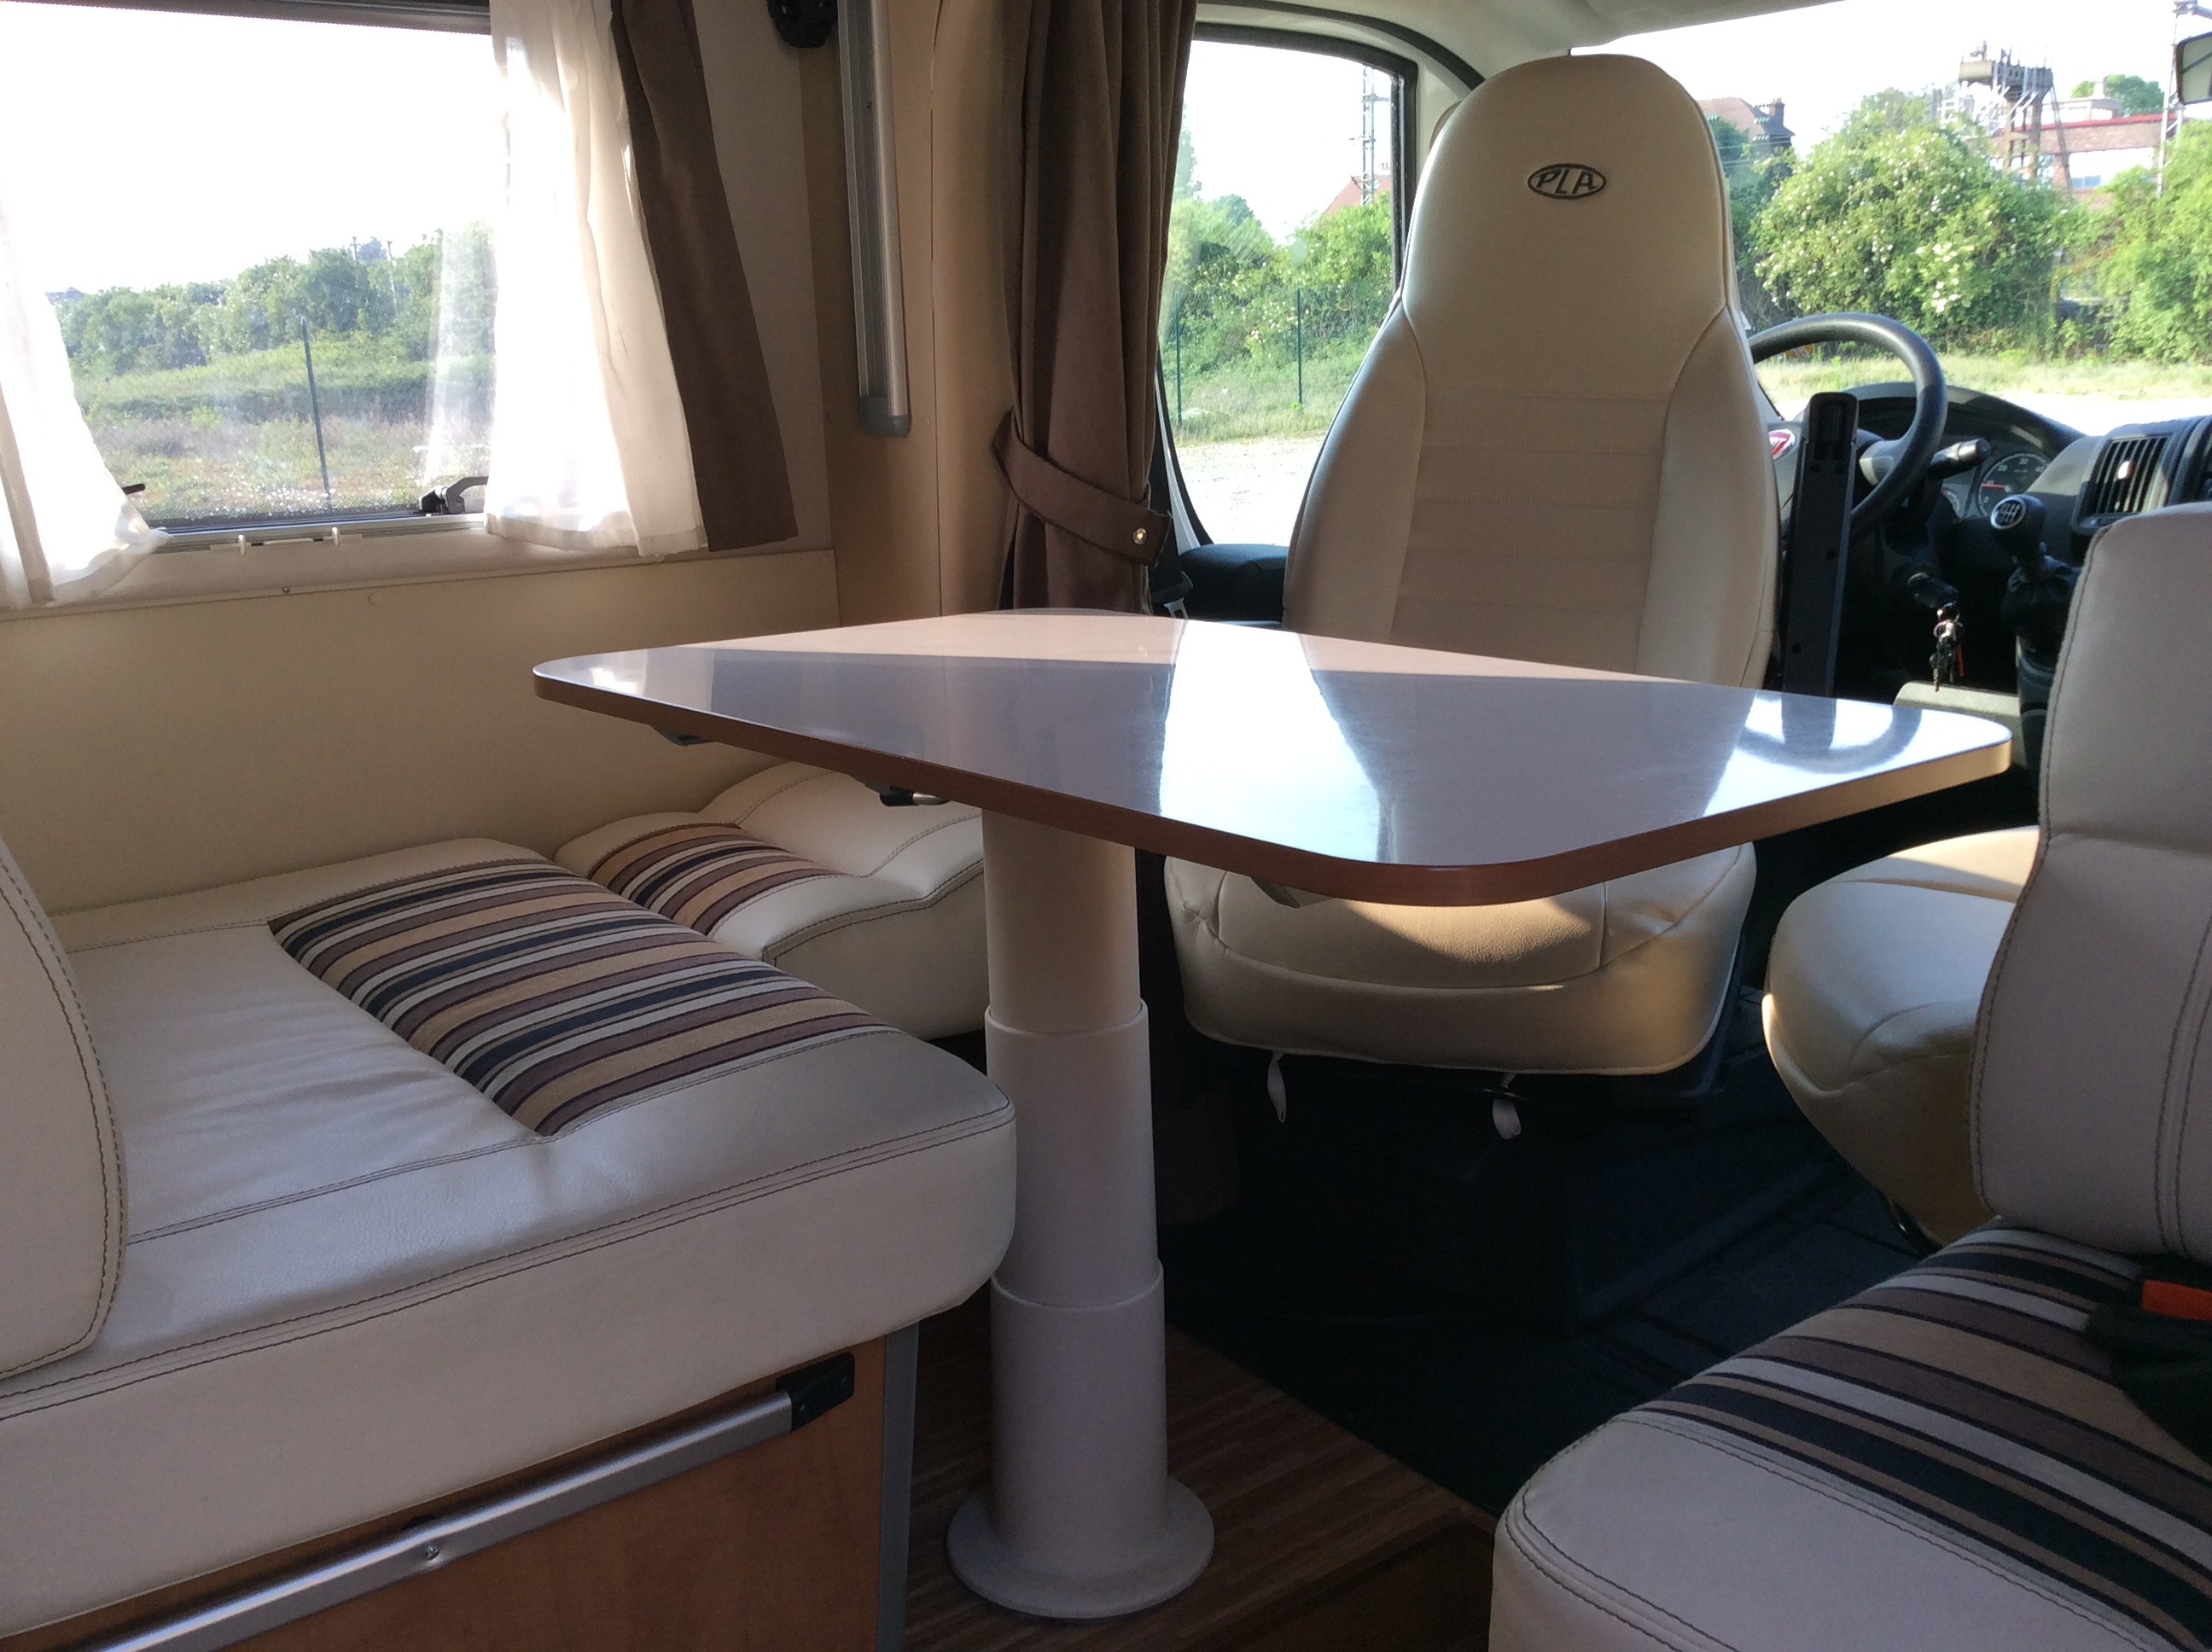 Pla Camper Plasy Hp74 Special Limited Edition - 7